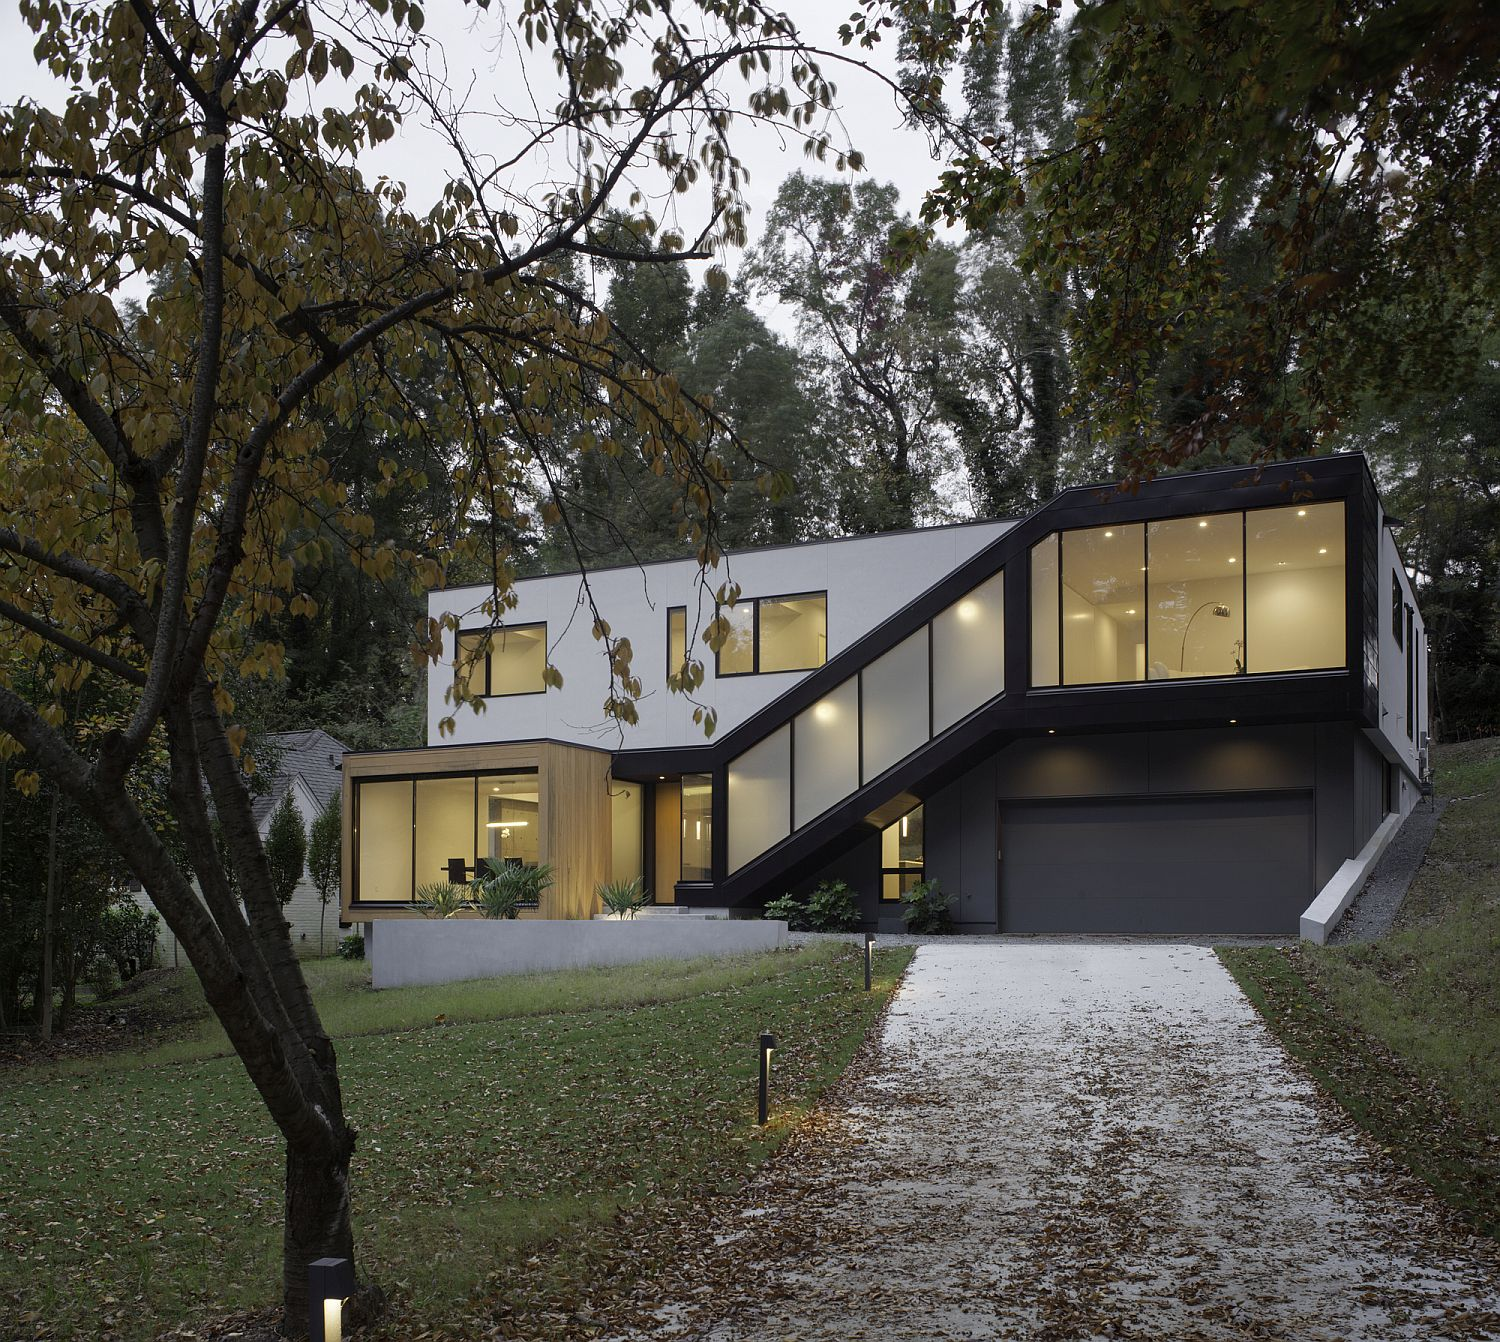 L Shaped Modern Minimal Residence On A Sloped Lot In Raleigh